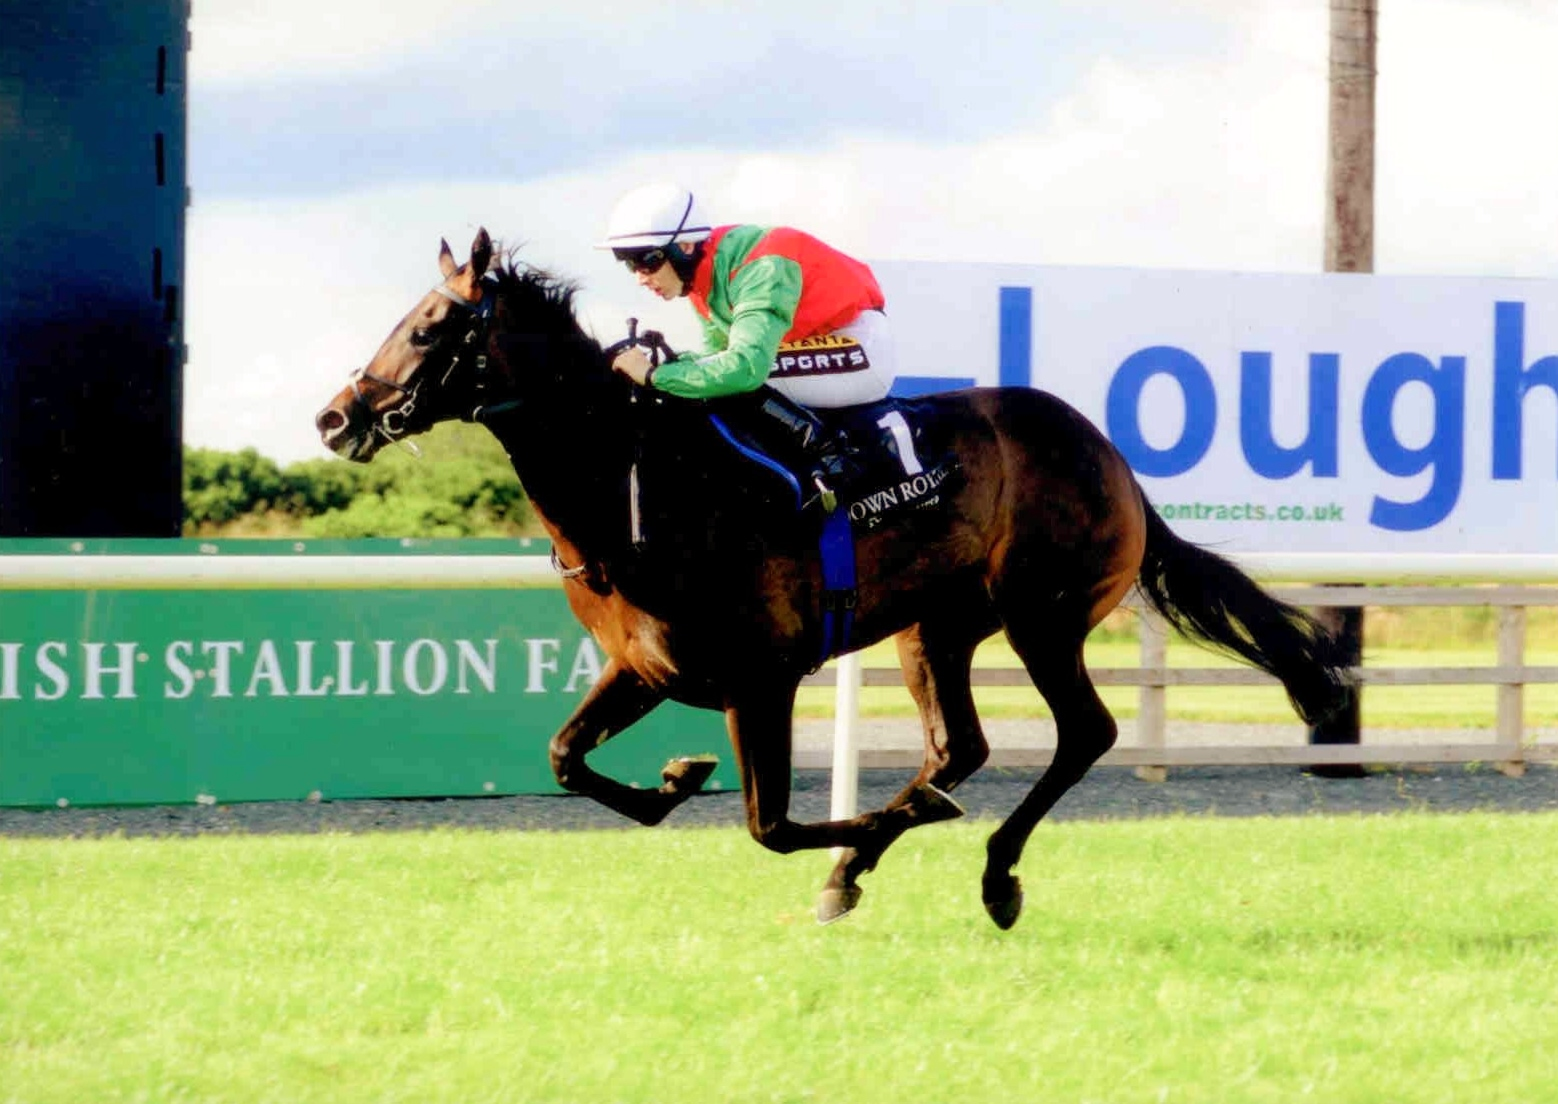 ROIBEARD wins first time out at Down Royal on July 24th 2015